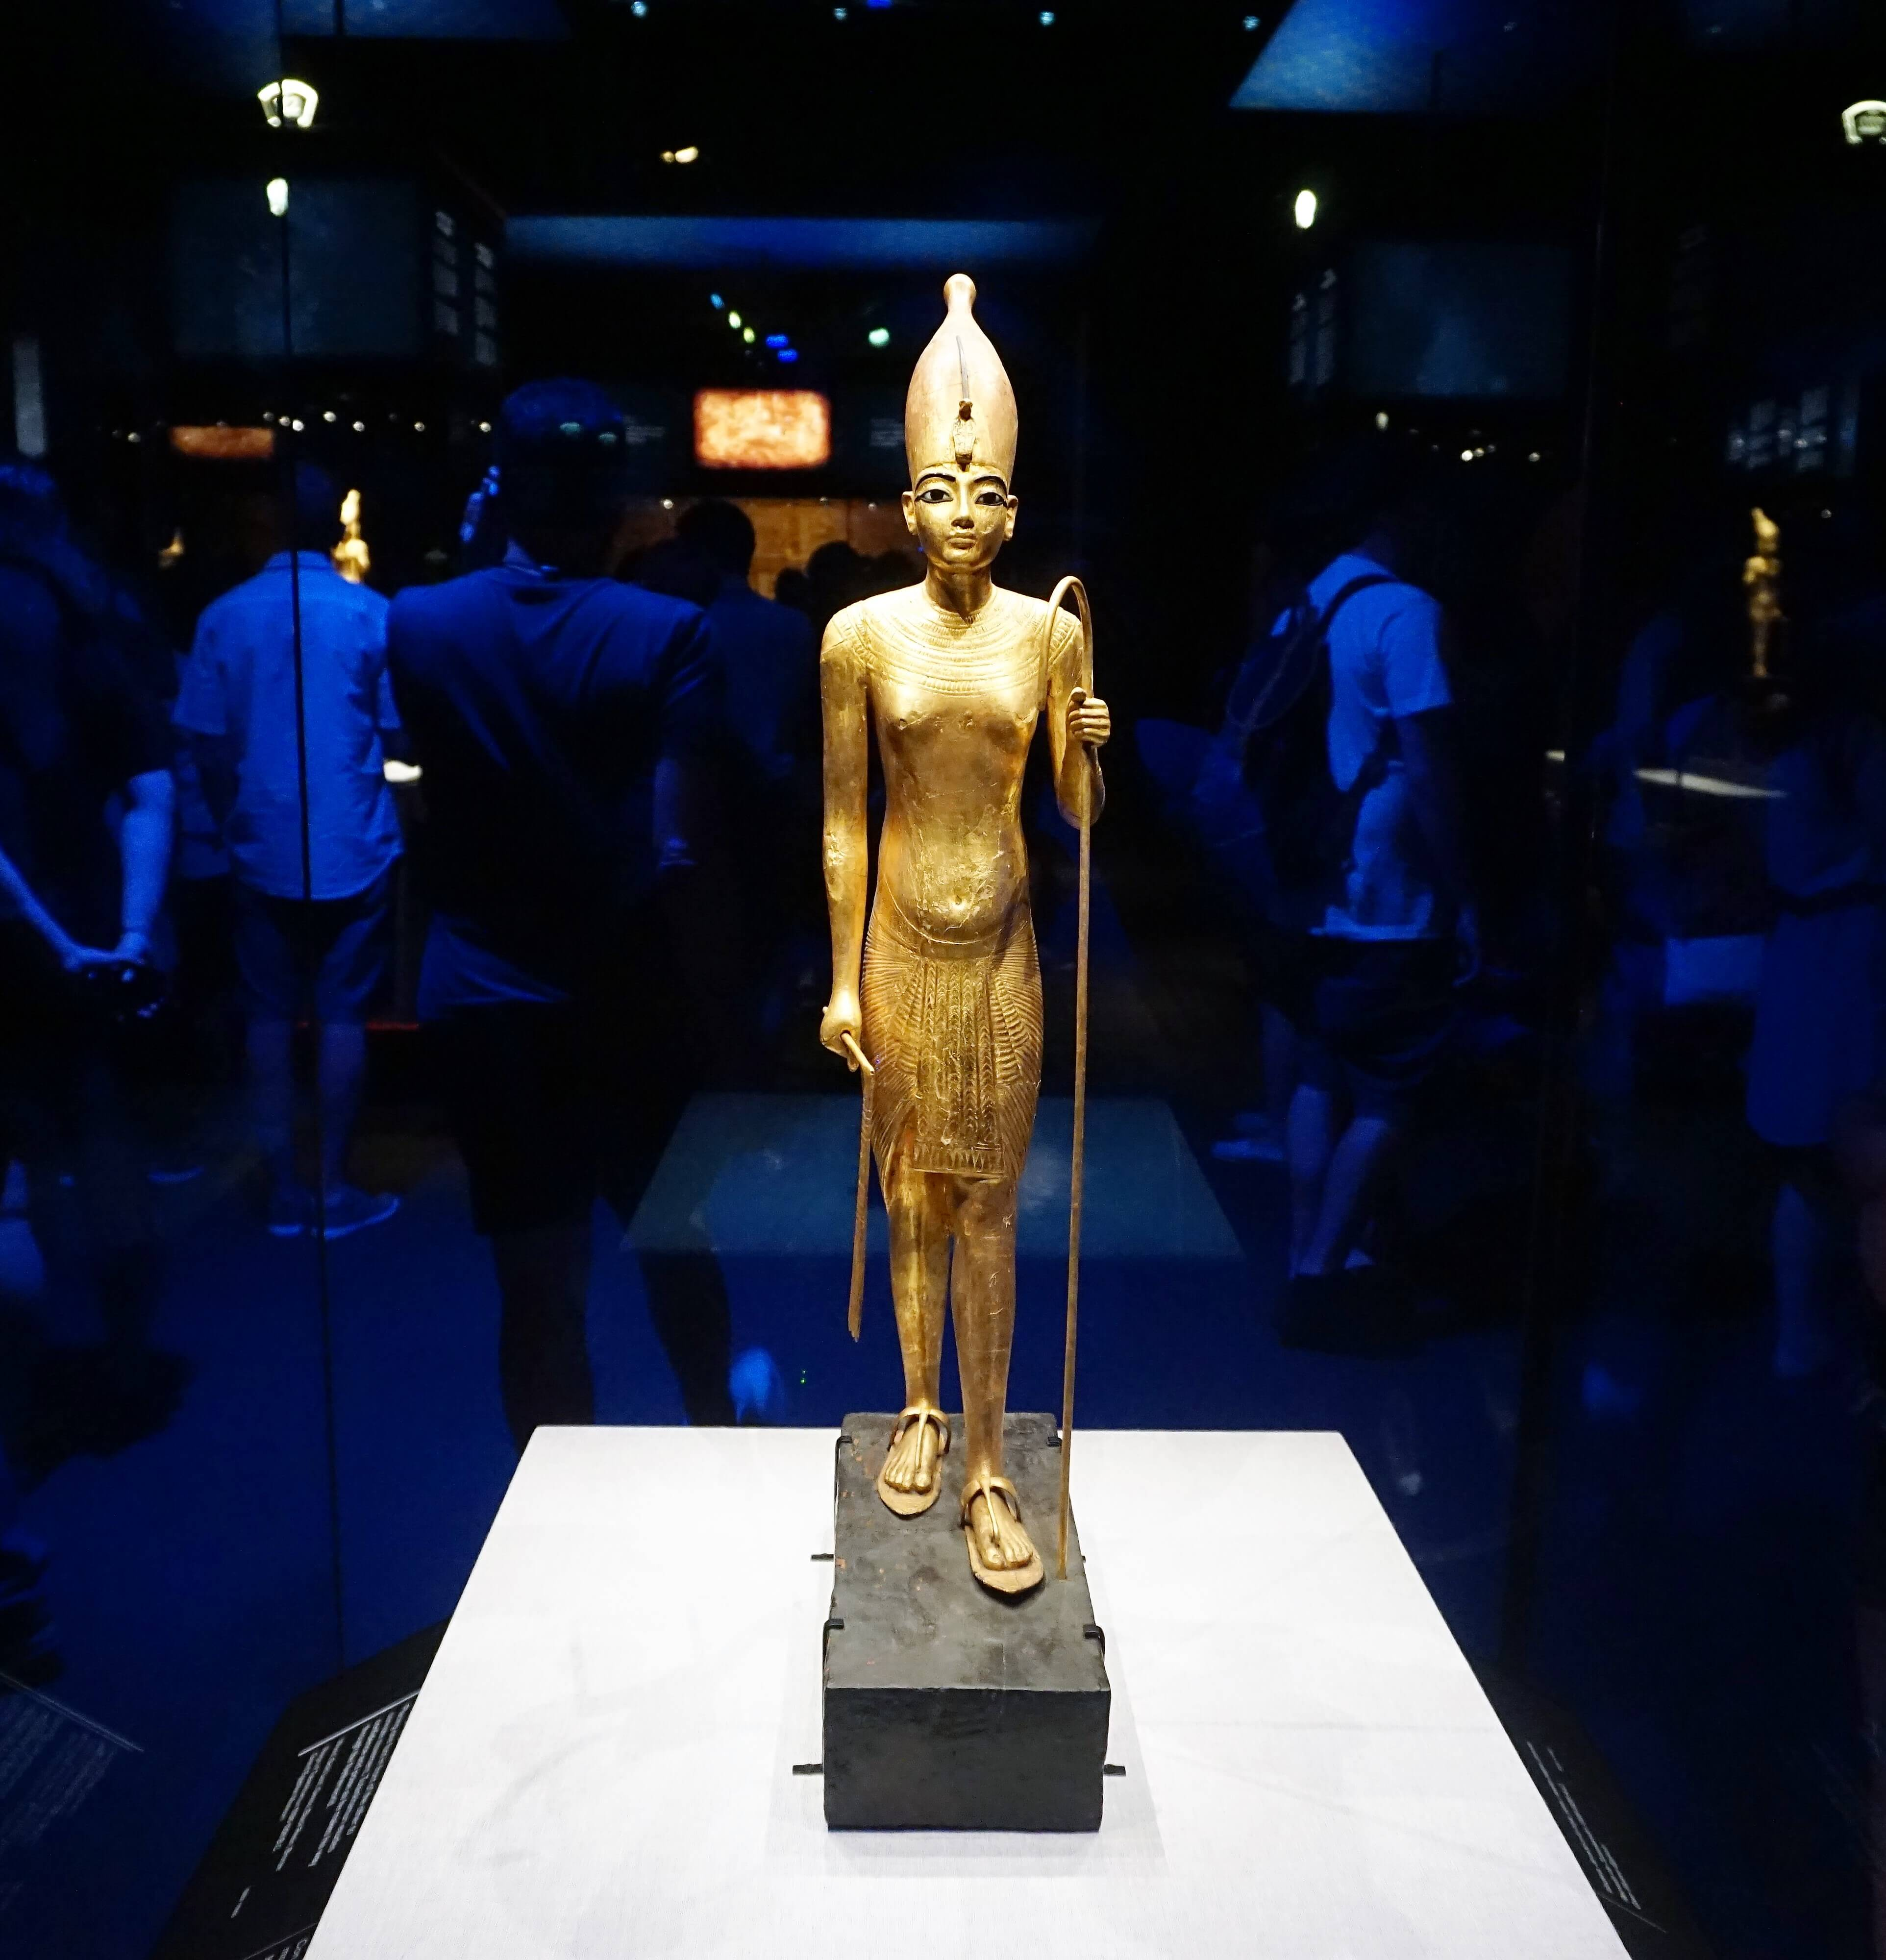 Gold statue of King Tut at California Science Center Los Angeles